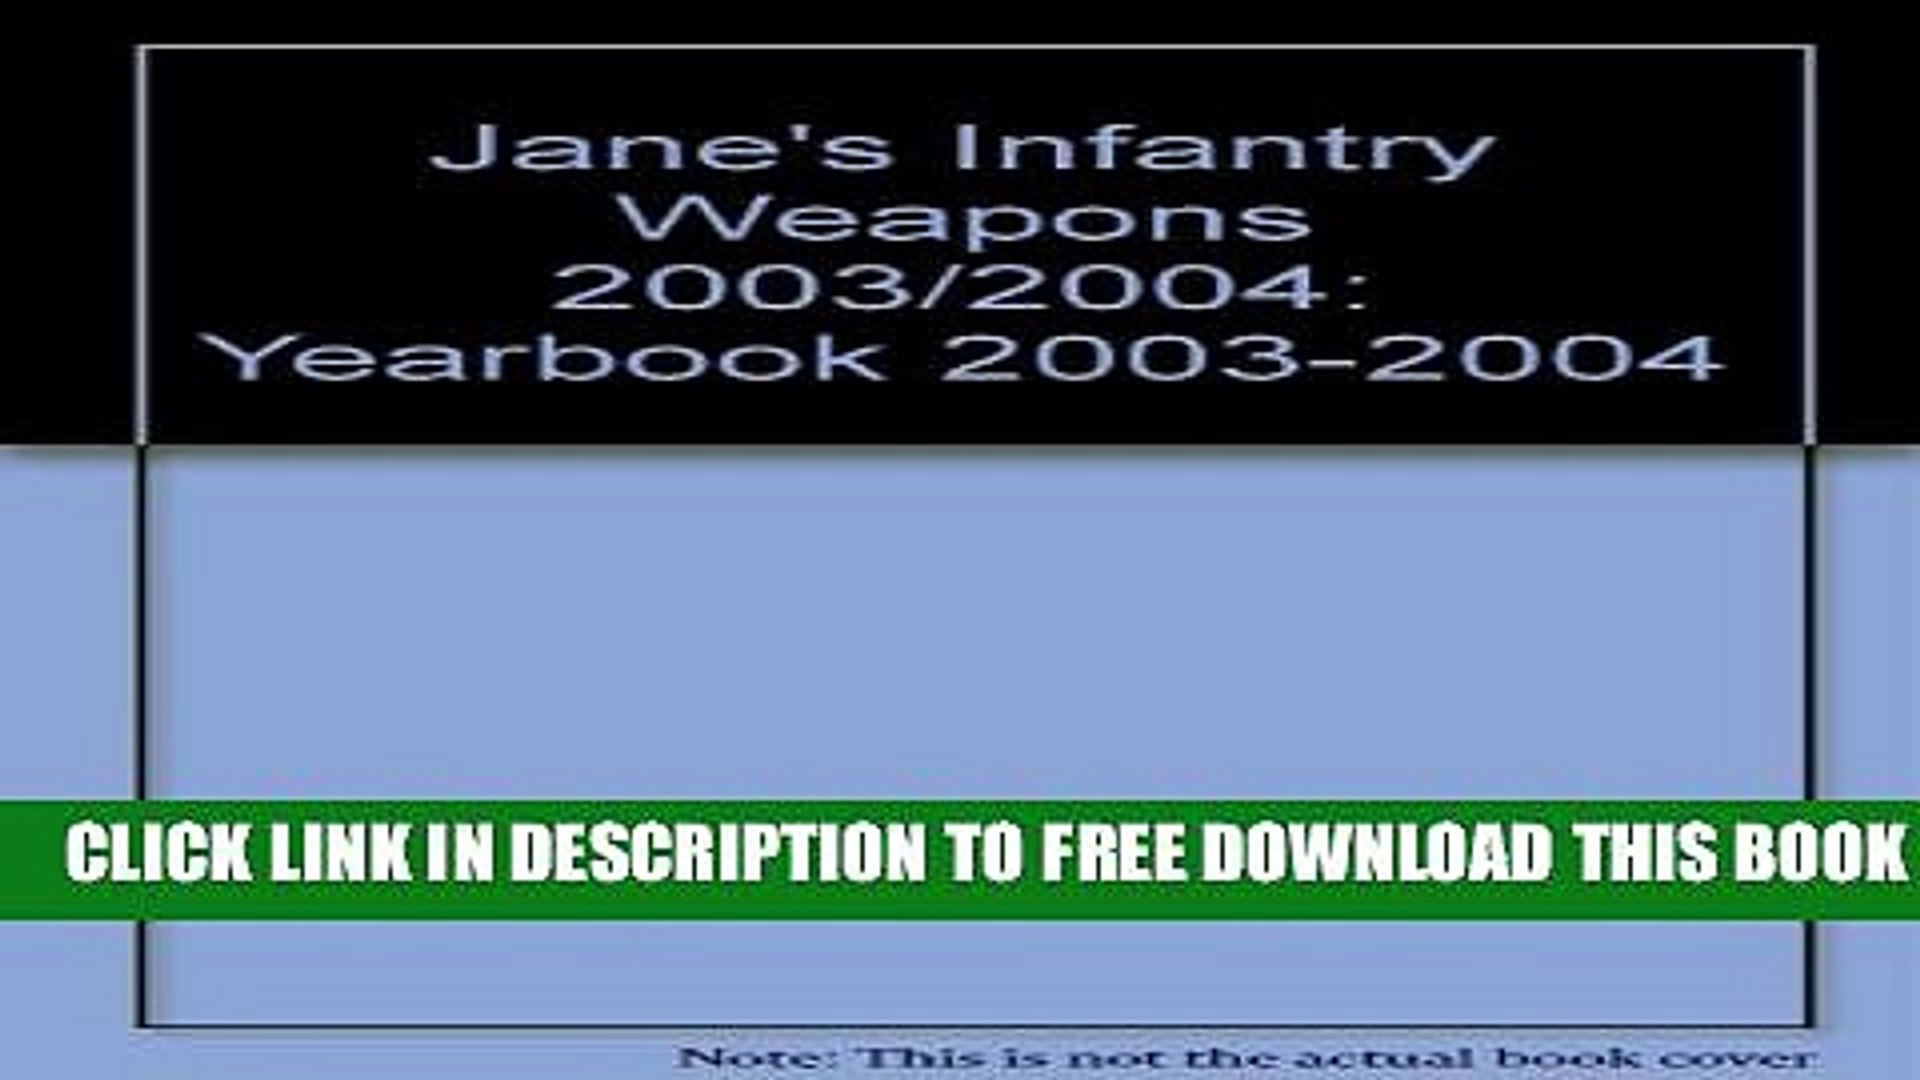 [PDF] Jane s Infantry Weapons, 2003-2004 (Jane s Infantry Weapons (Print Version), 2003 2004)